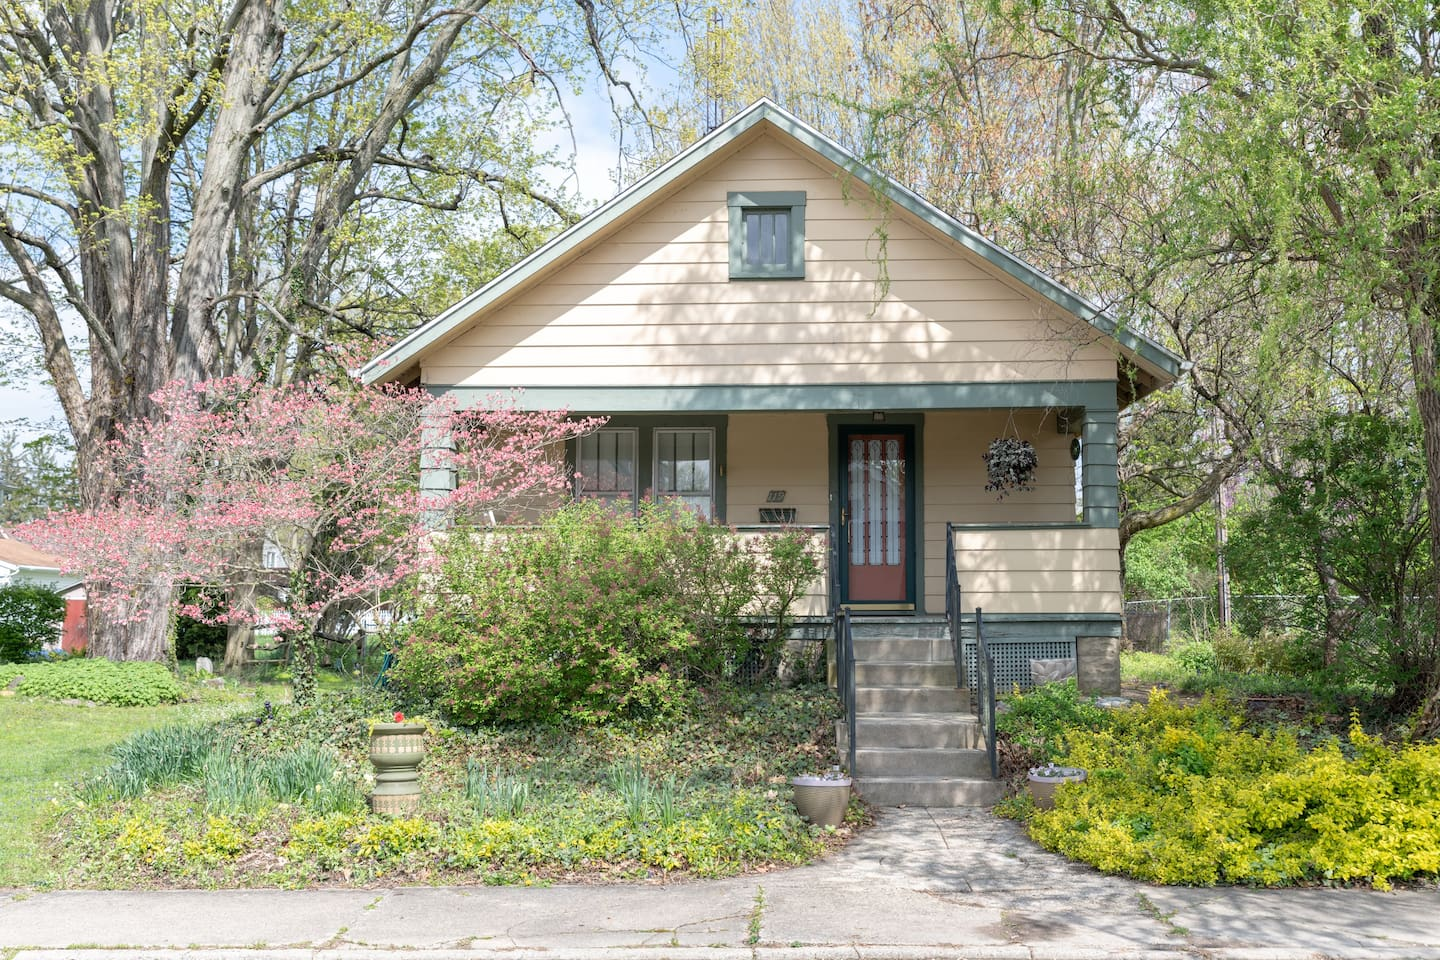 The Artist's Retreat Guest House is a 1919 Craftsman bungalow only a half-block from the campus of Earlham College.